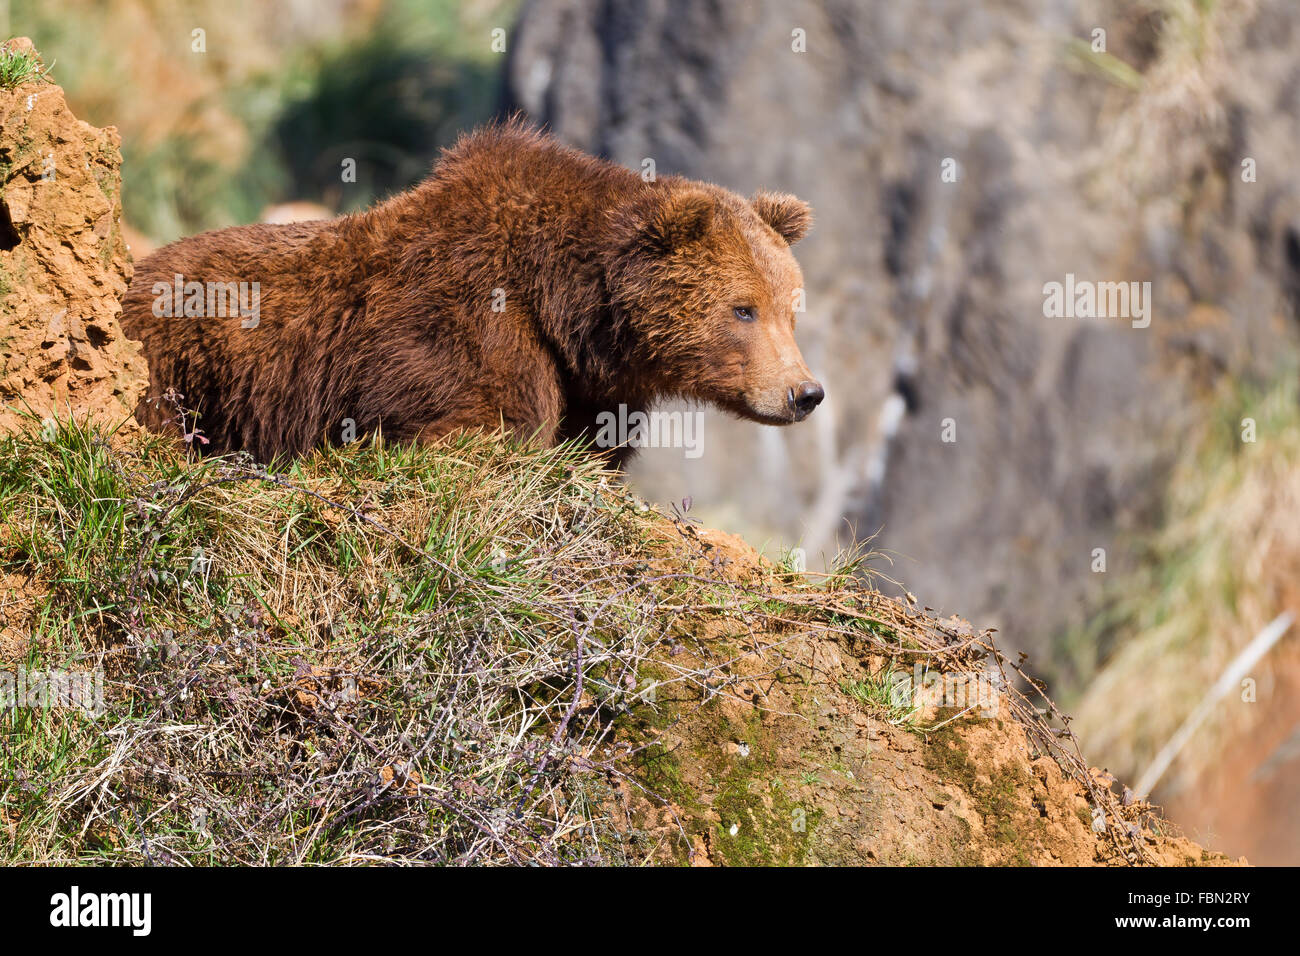 A brown (or grizzly) bear in Cabarceno Nature Park, Cantabria, Spain. - Stock Image